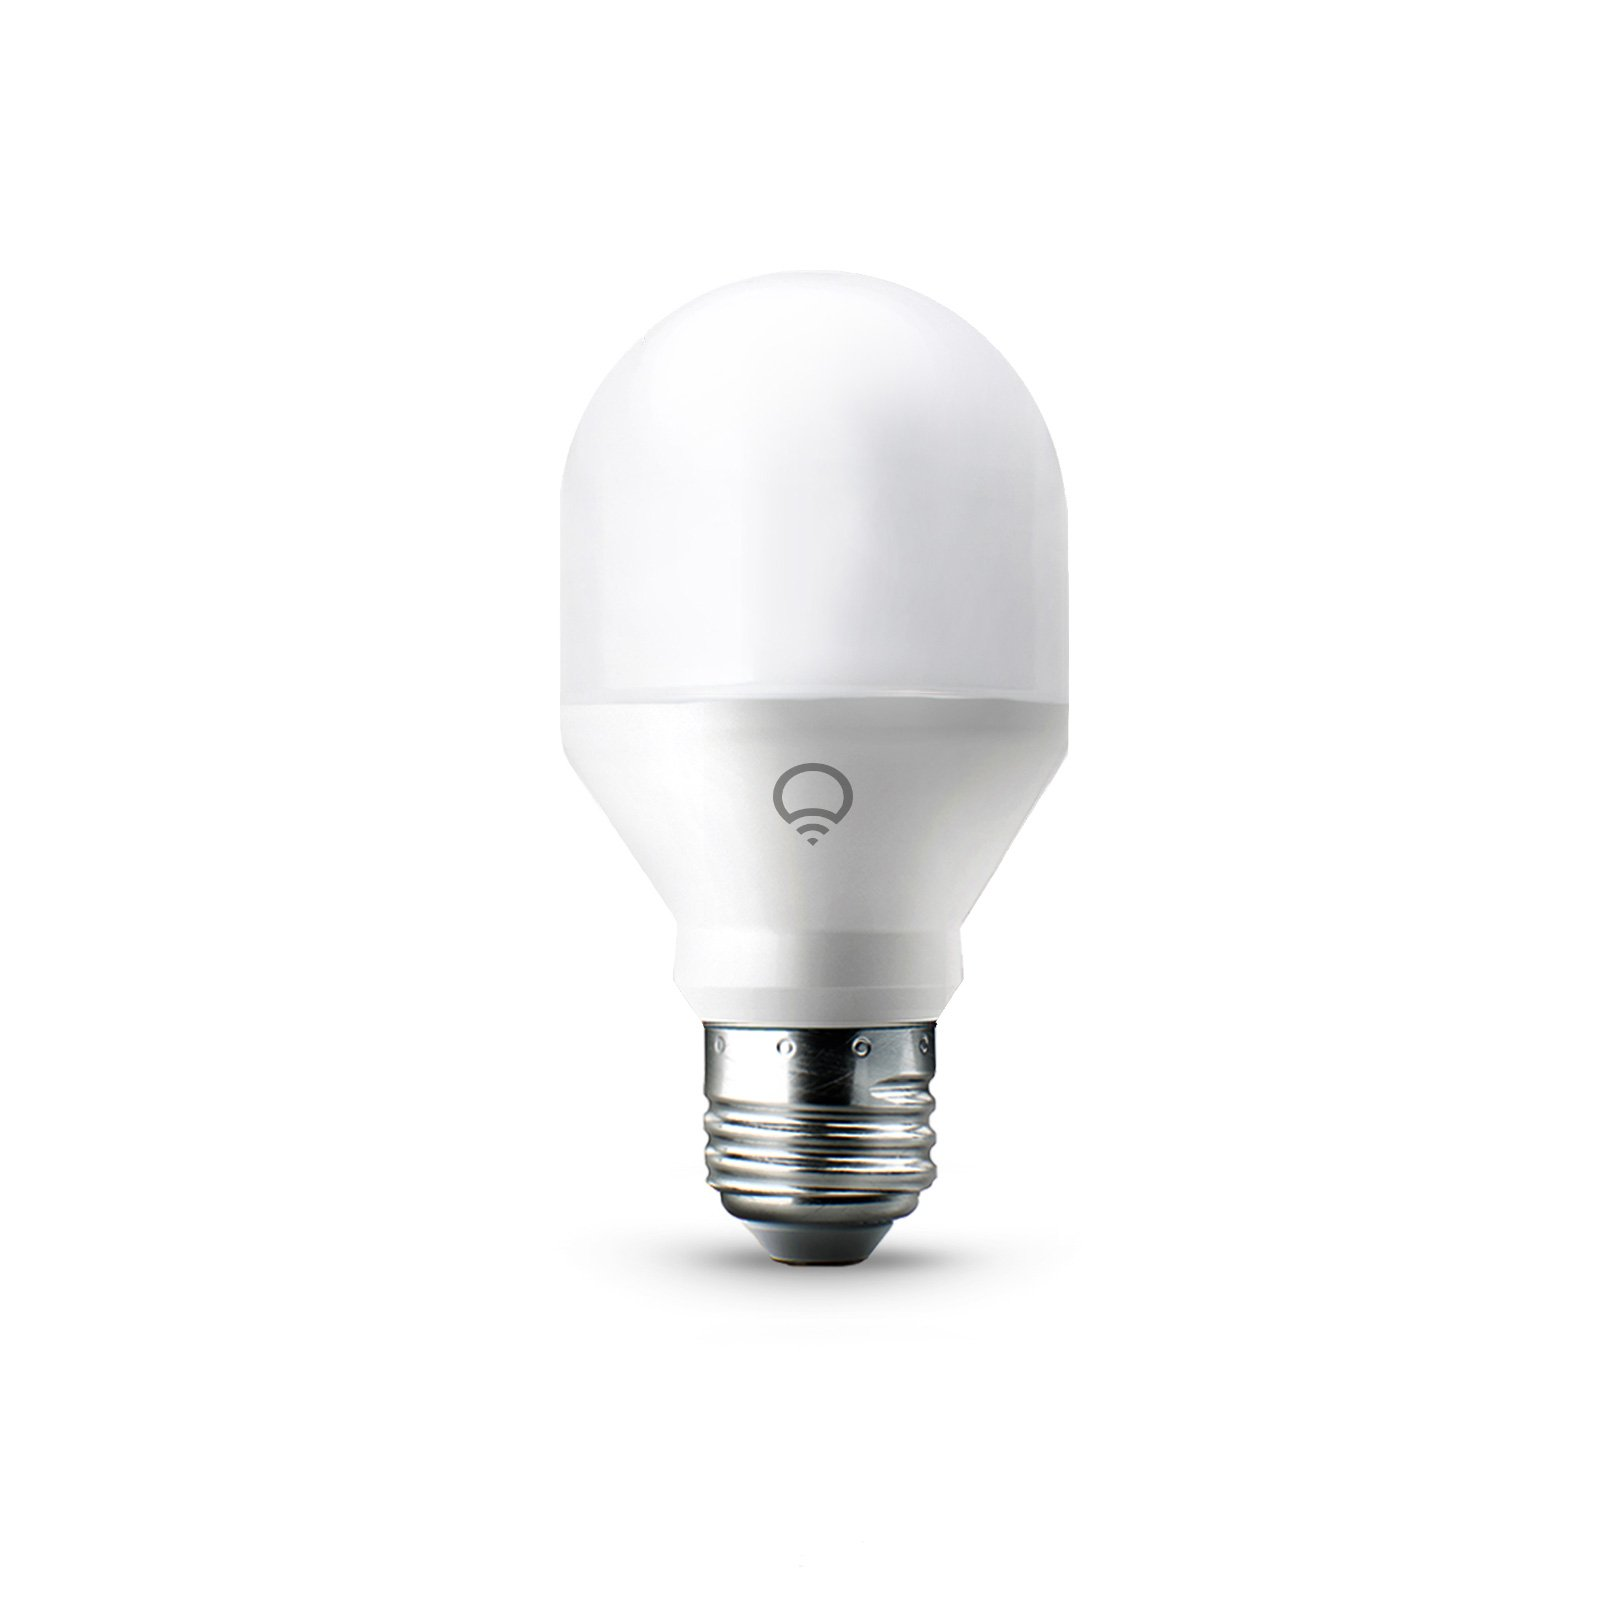 LIFX Mini (A19) Wi-Fi Smart LED Light Bulb, Adjustable, Multicolor, Dimmable, No Hub Required, Works with Alexa, Apple HomeKit and the Google Assistant, Pack of 4